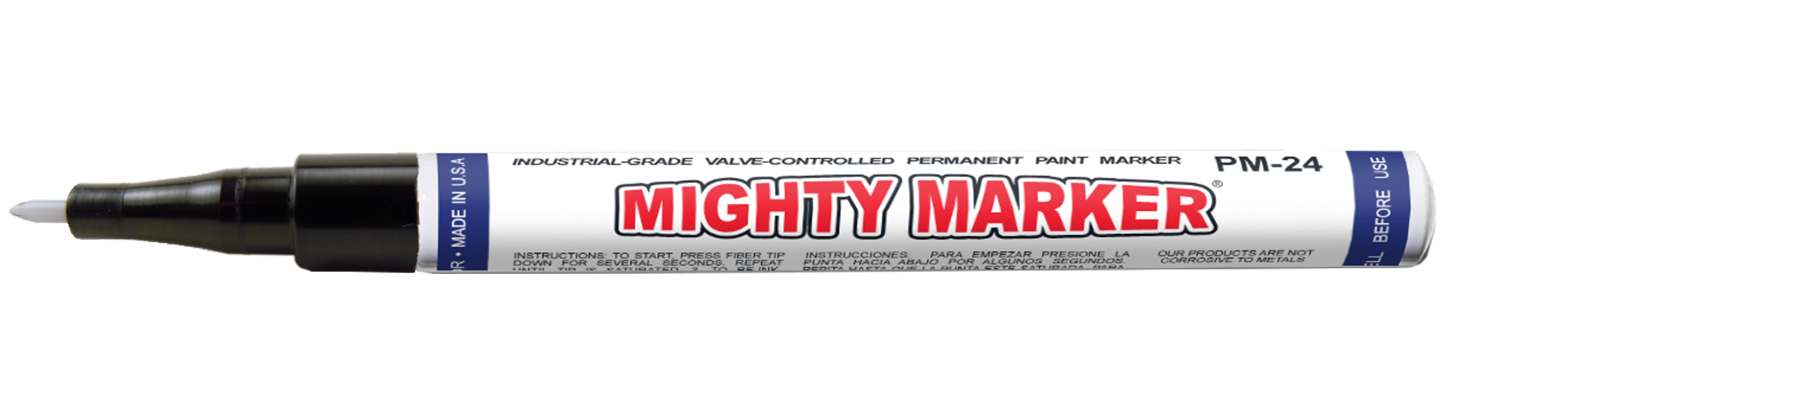 Mighty Marker